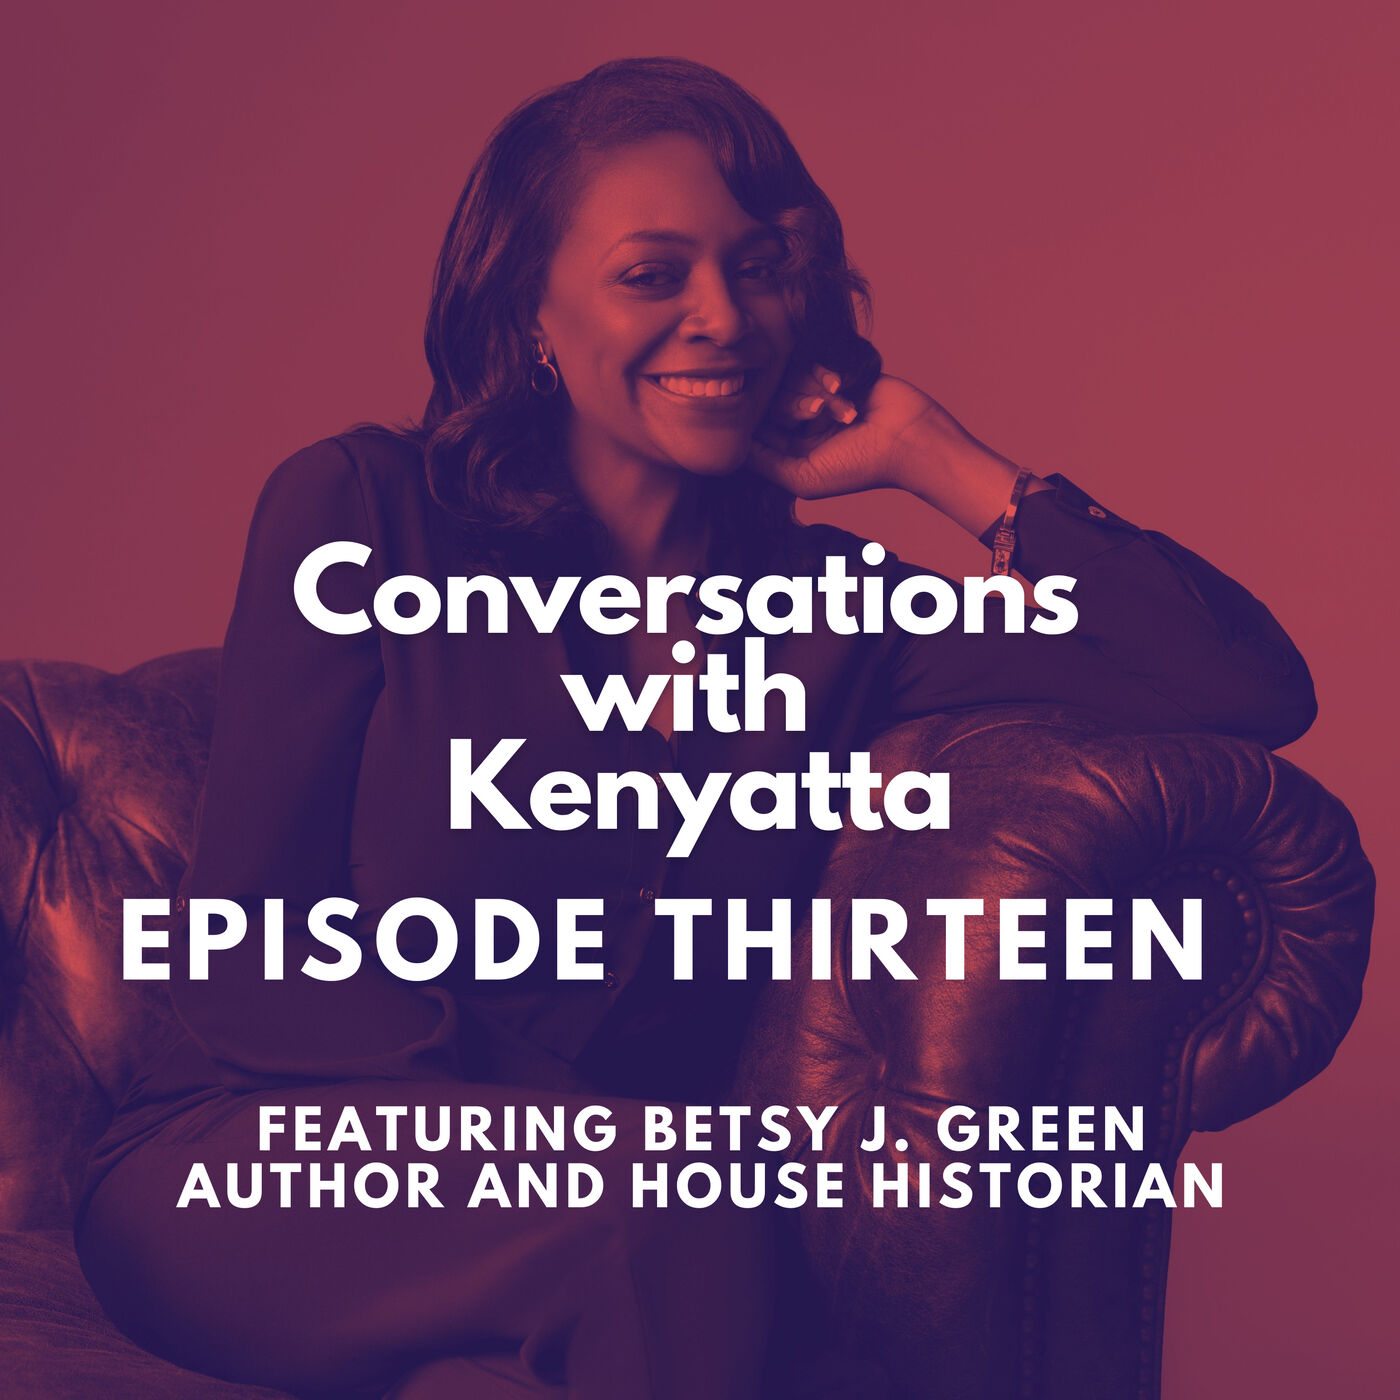 A Conversation with House Historian Betsy J. Green